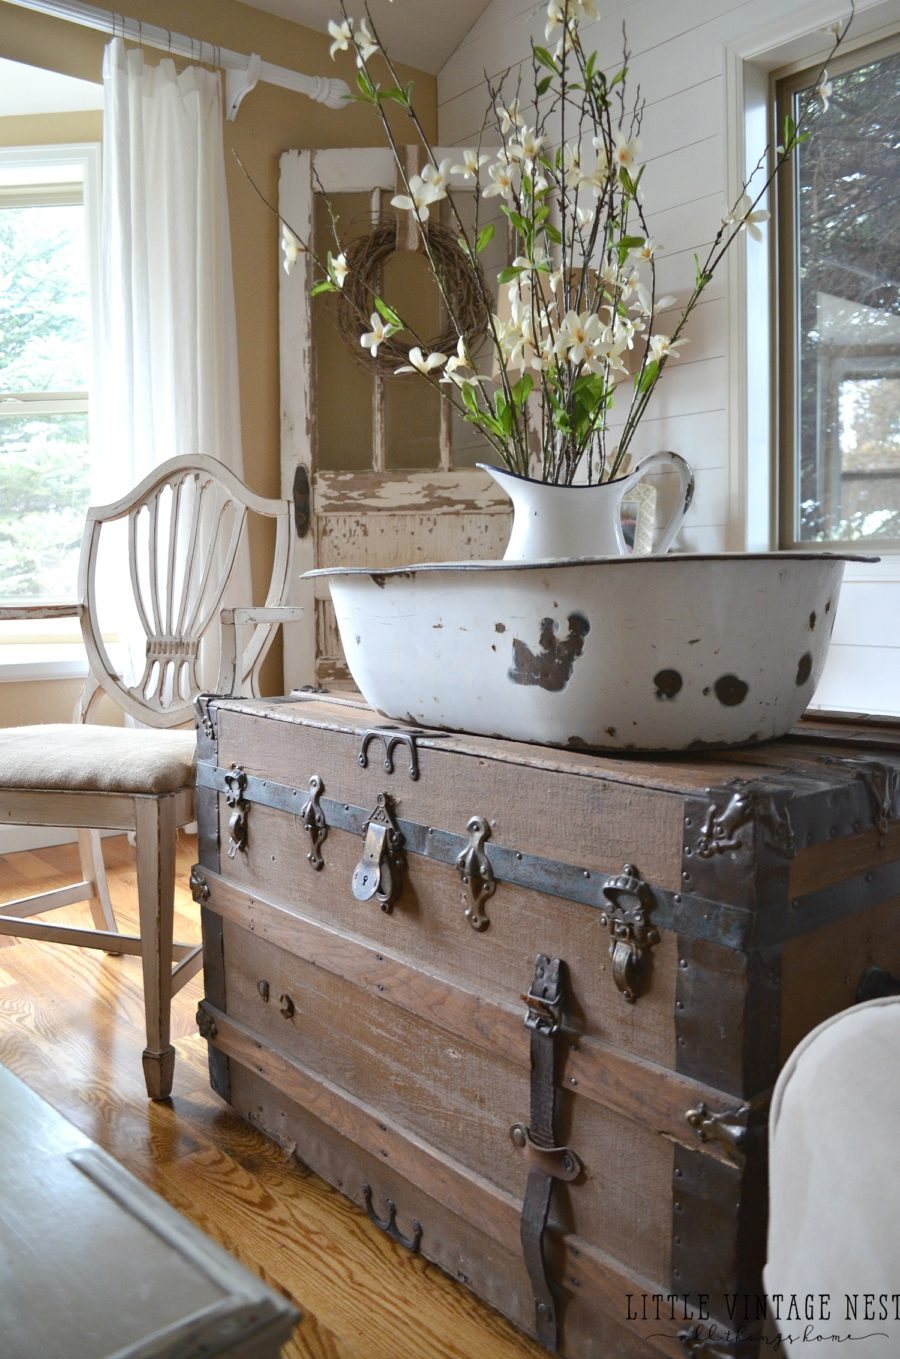 Charming Vintage Decor Part - 1: 15 Vintage Decor Ideas That Are Sure To Inspire